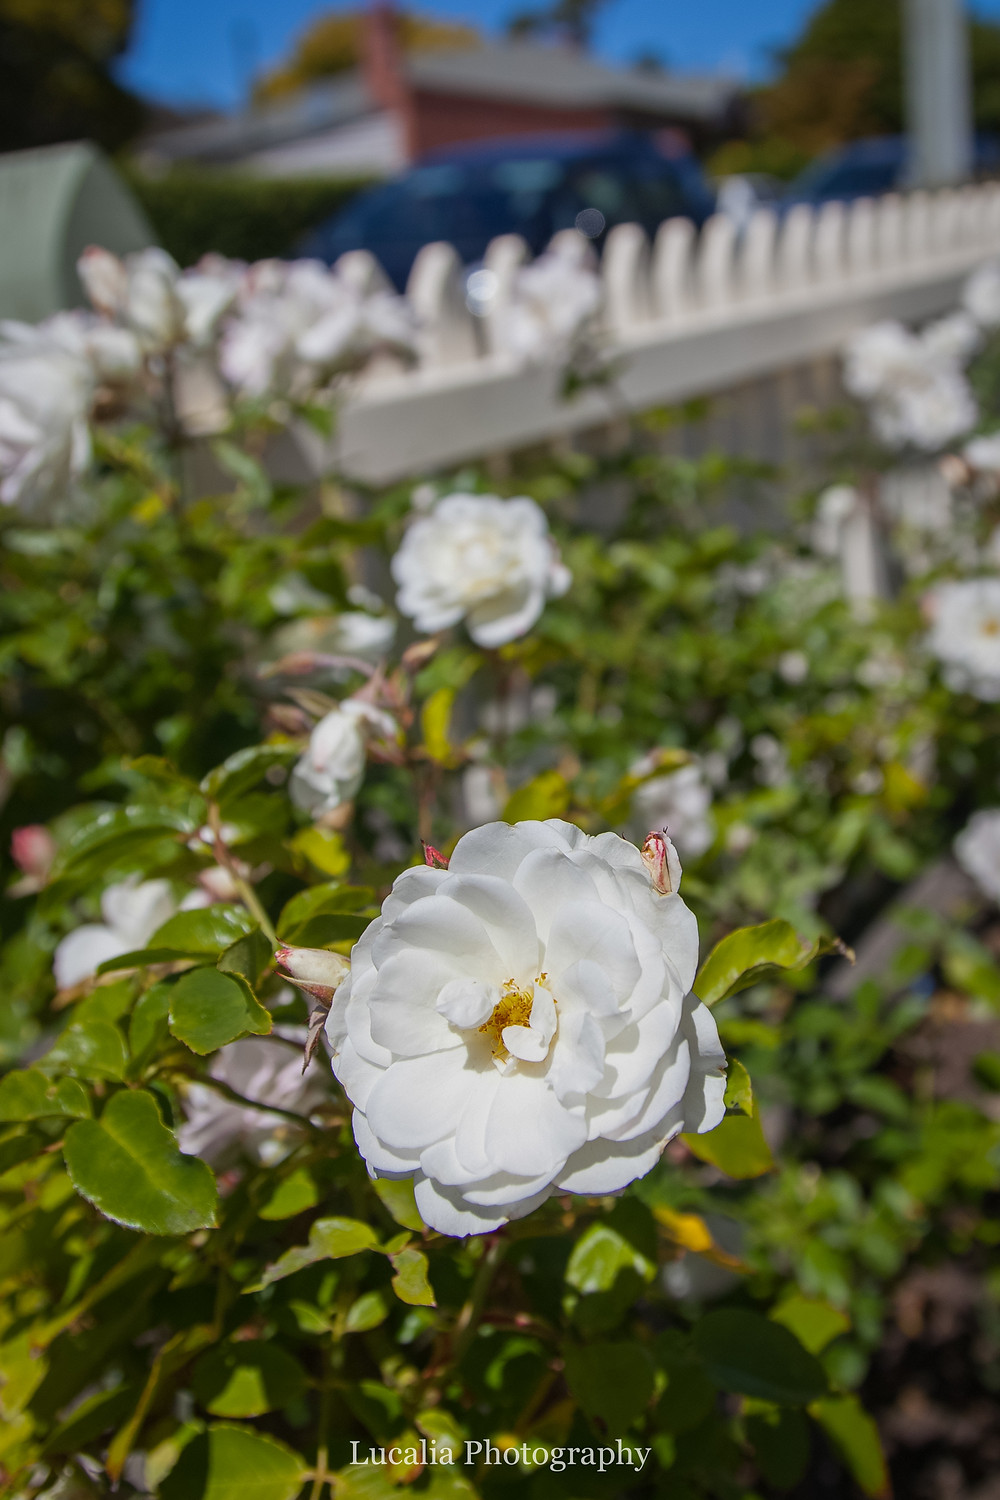 iceberg rose growing in mum's garden, Wairarapa wedding photographer